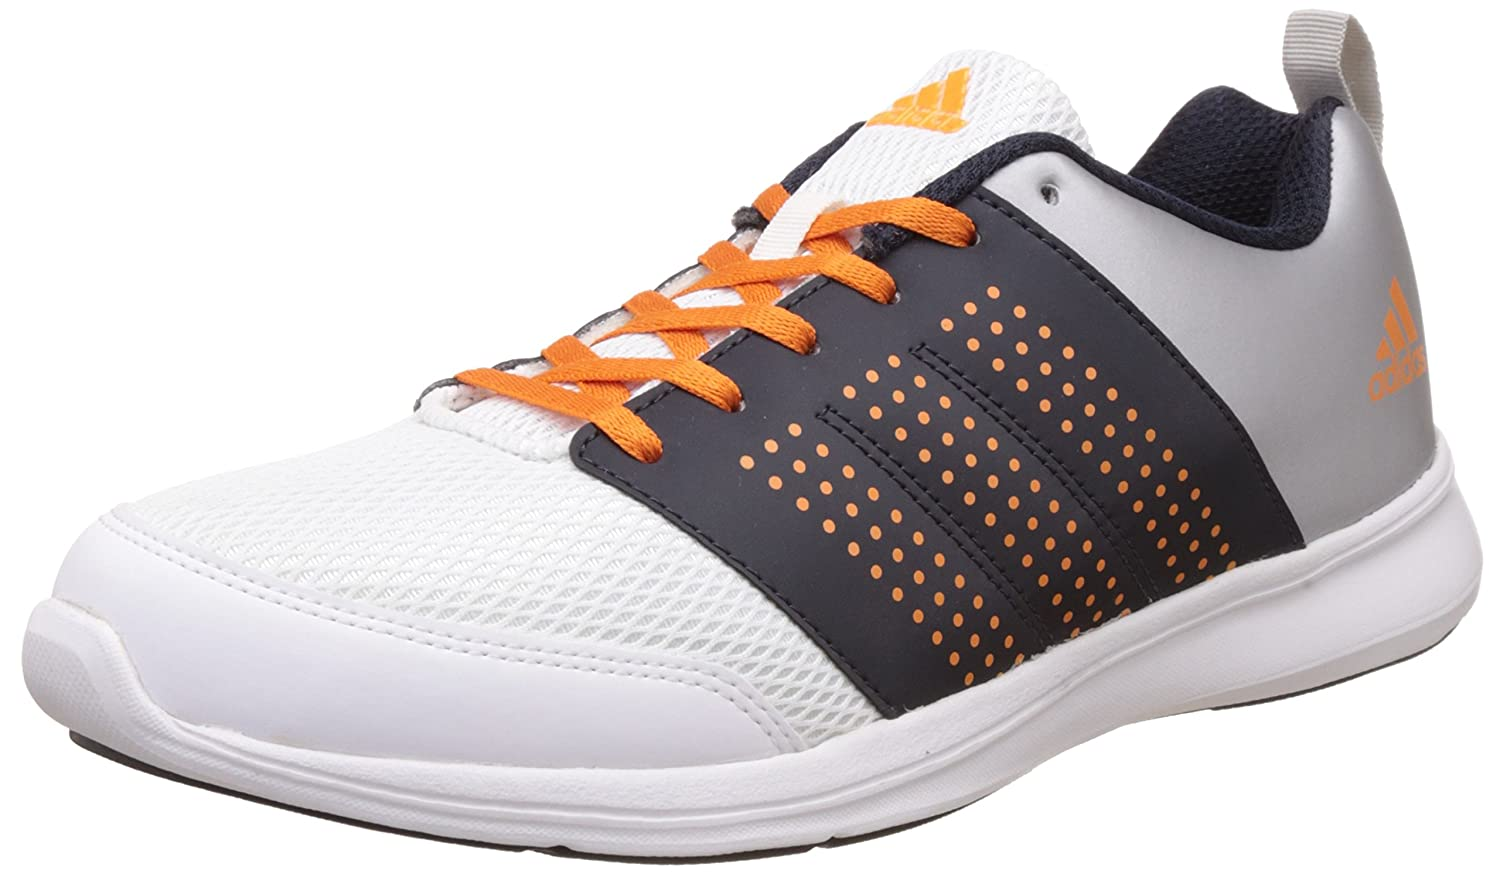 adidas Men's Adispree M Running Shoes: Buy Online at Low Prices in India -  Amazon.in